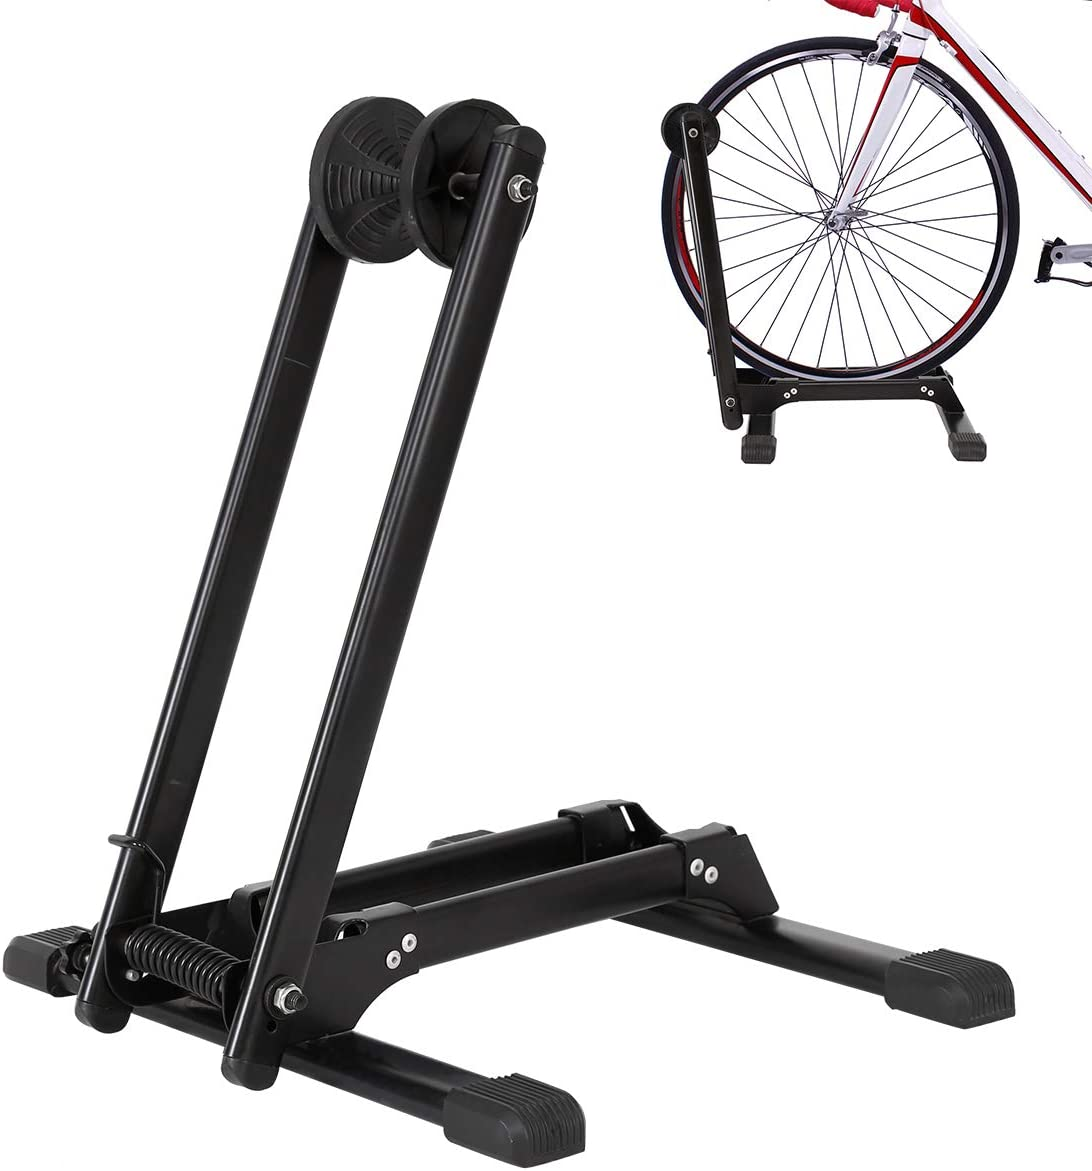 Foldable Bicycle Storage Stand, Bike Floor Parking Rack, Home Bike Stand Rack Holder, Portable Bicycle Storage Holder Mountain Bikes Adjustable Cycle Parking Rack Indoor Outdoor Garage Storage